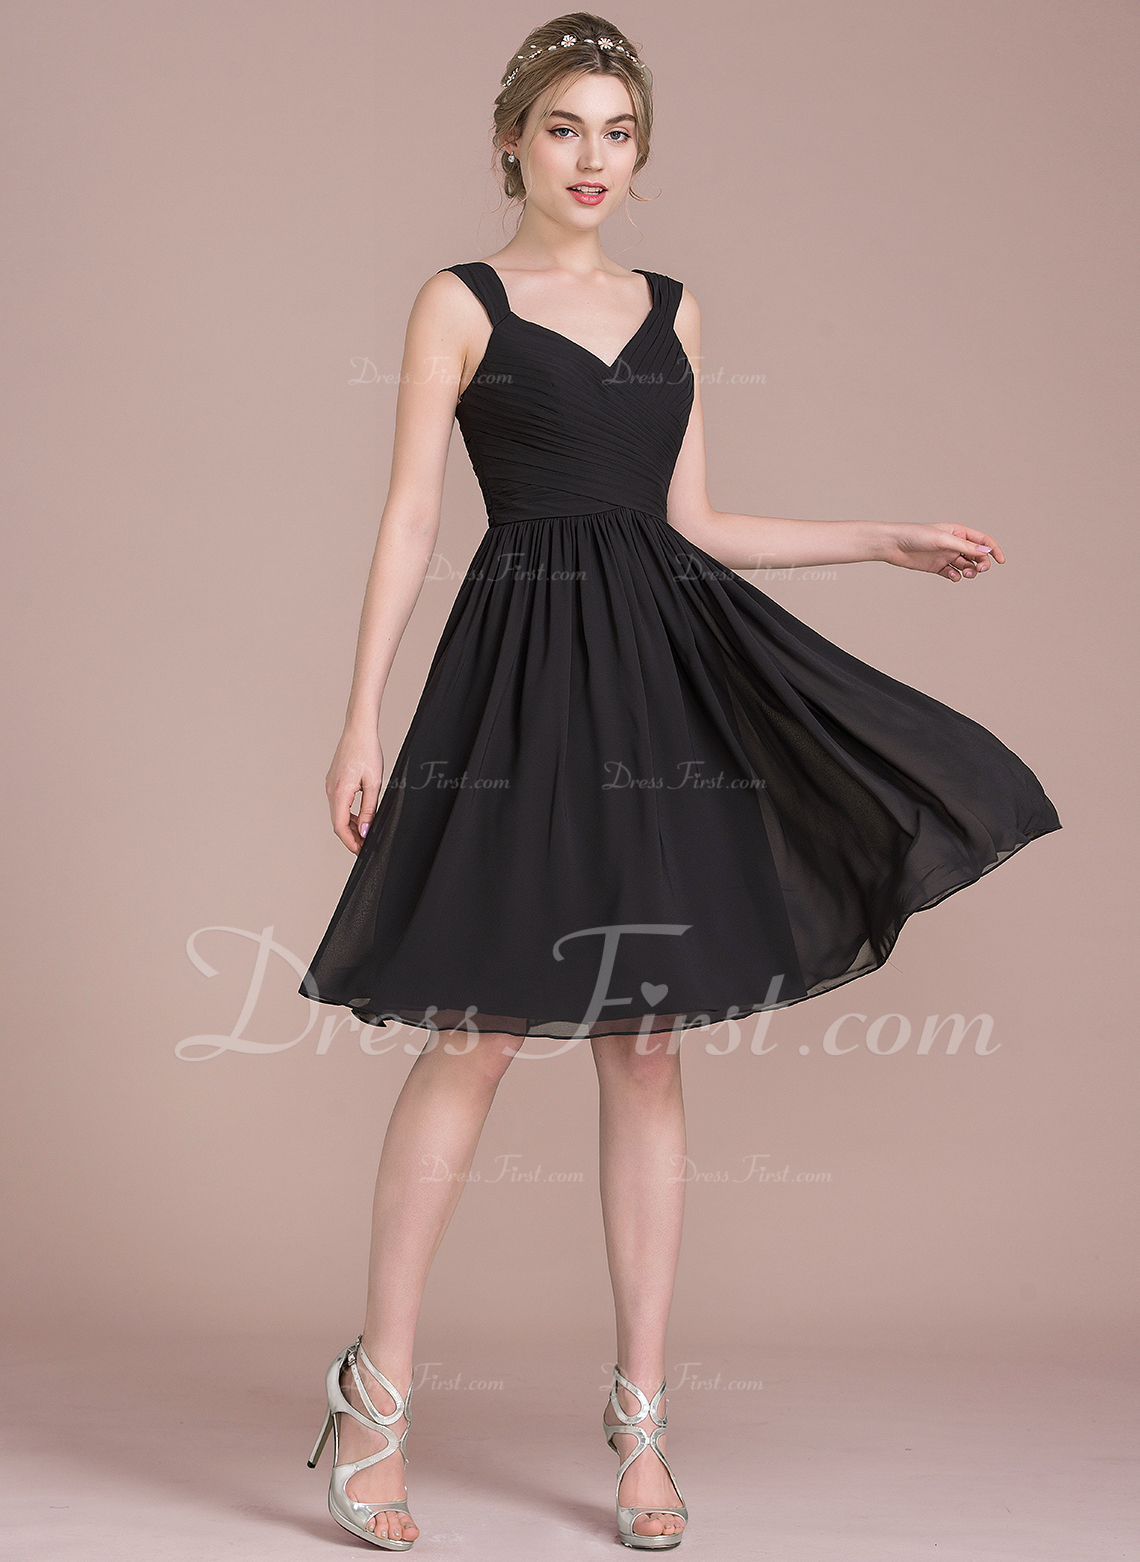 A lineprincess v neck knee length chiffon bridesmaid dress with bridesmaid dresses 105578 loading zoom ombrellifo Images